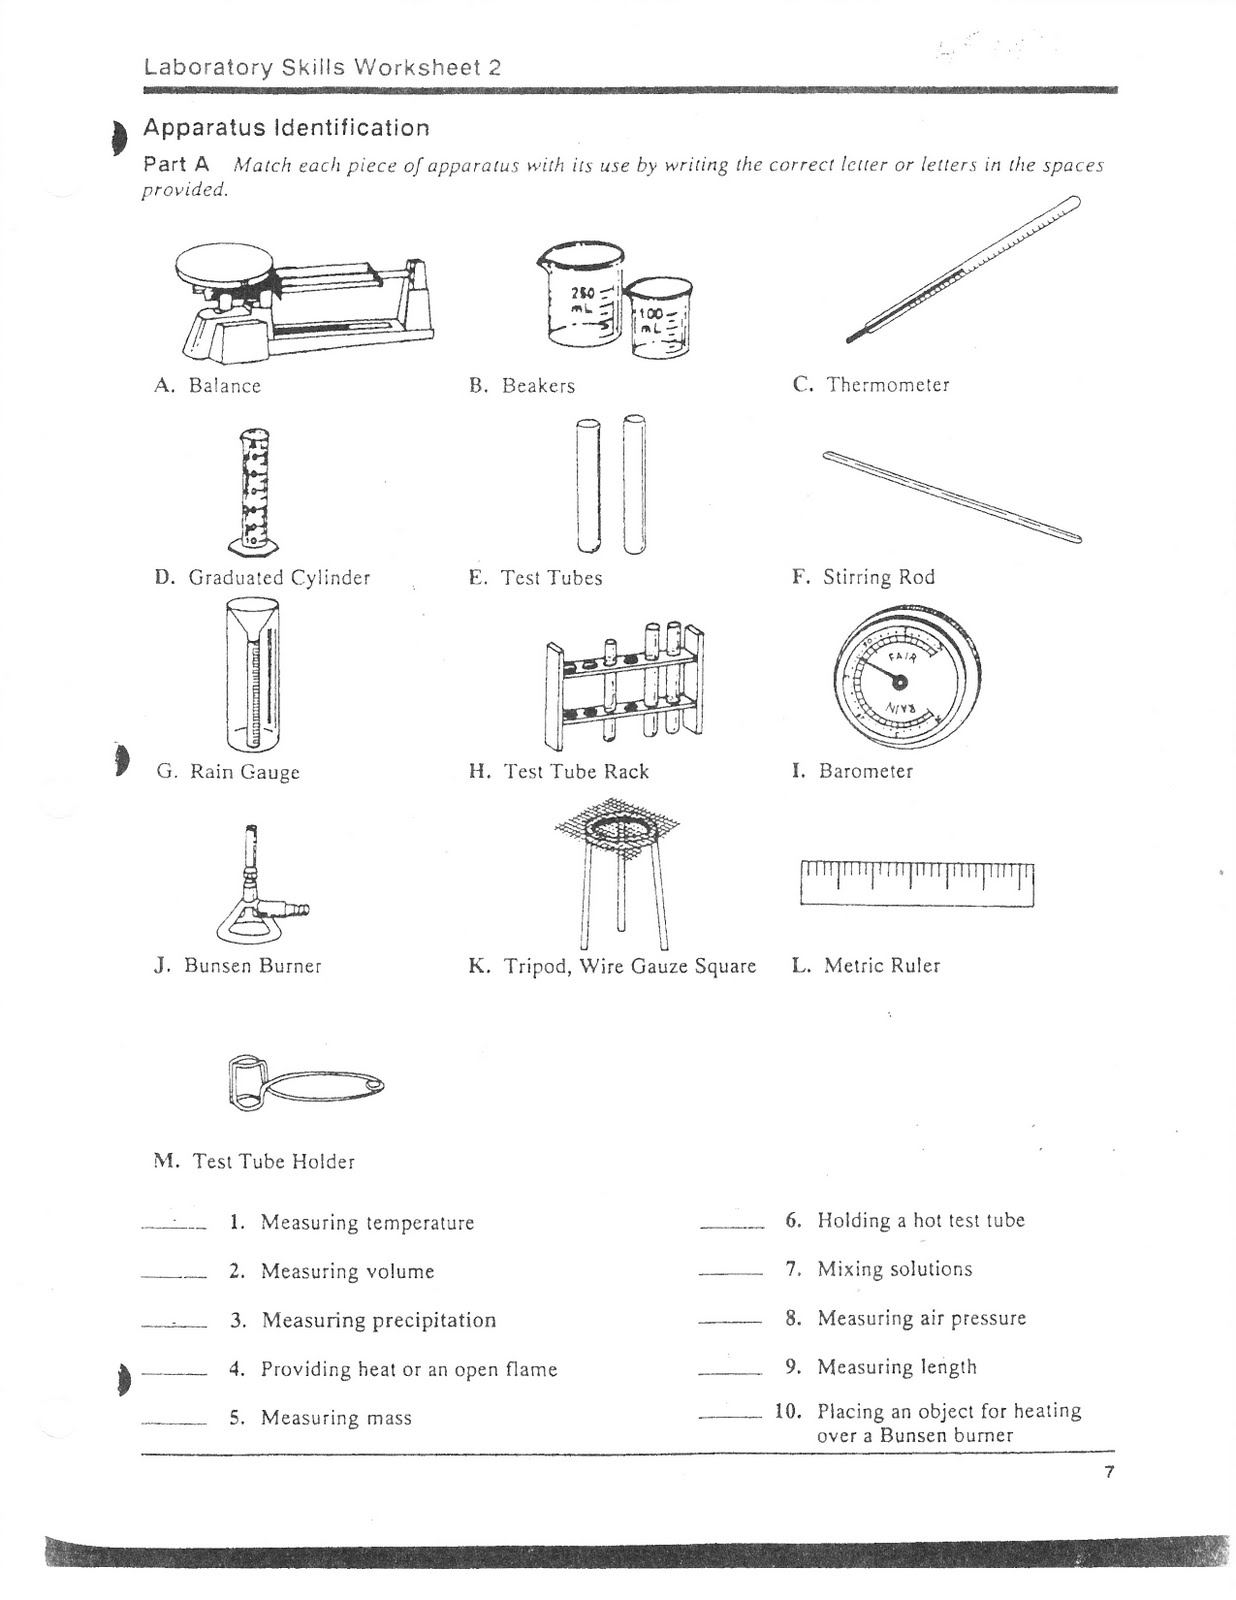 Worksheets Lab Equipment Worksheet science class lab equipment identification identification